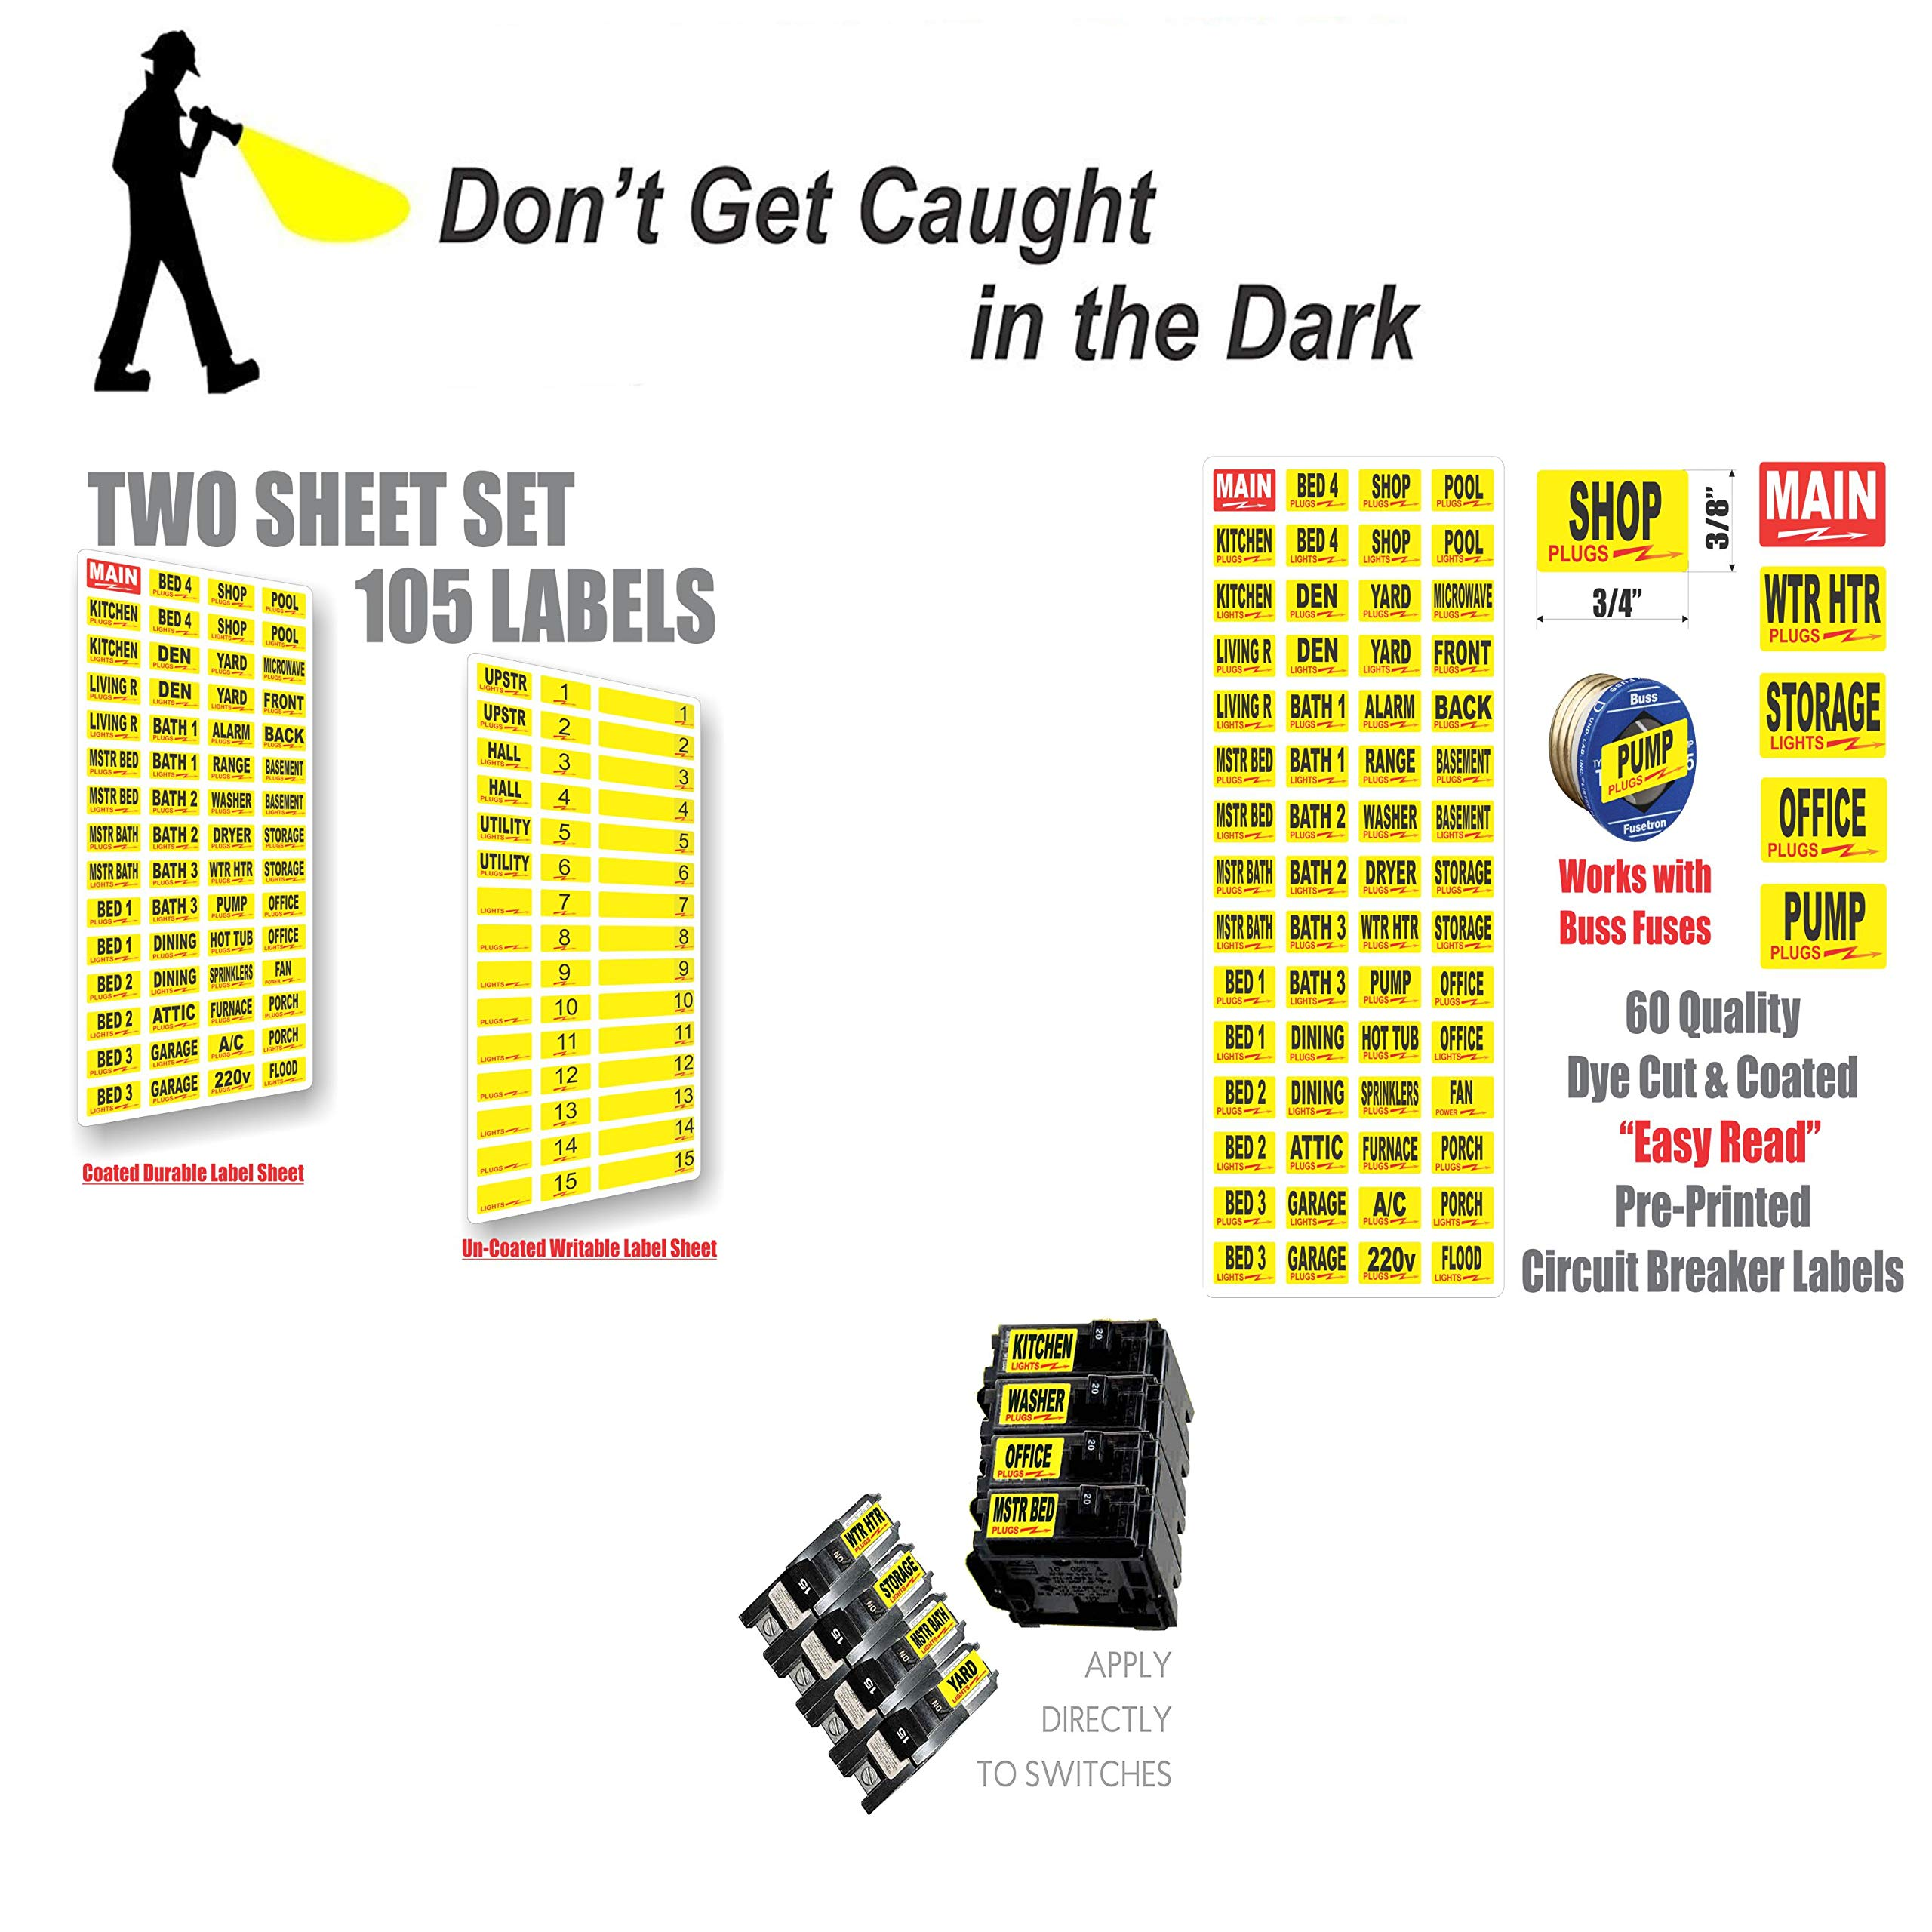 Circuit Breaker ID Tags plus Bonus Chrome Socket Labels for tool organizing, great for Home Owners, Apartments & Electricians, Decals fit all Breaker Panels & Switches, applies directly to the breaker by Steellabels (Image #4)